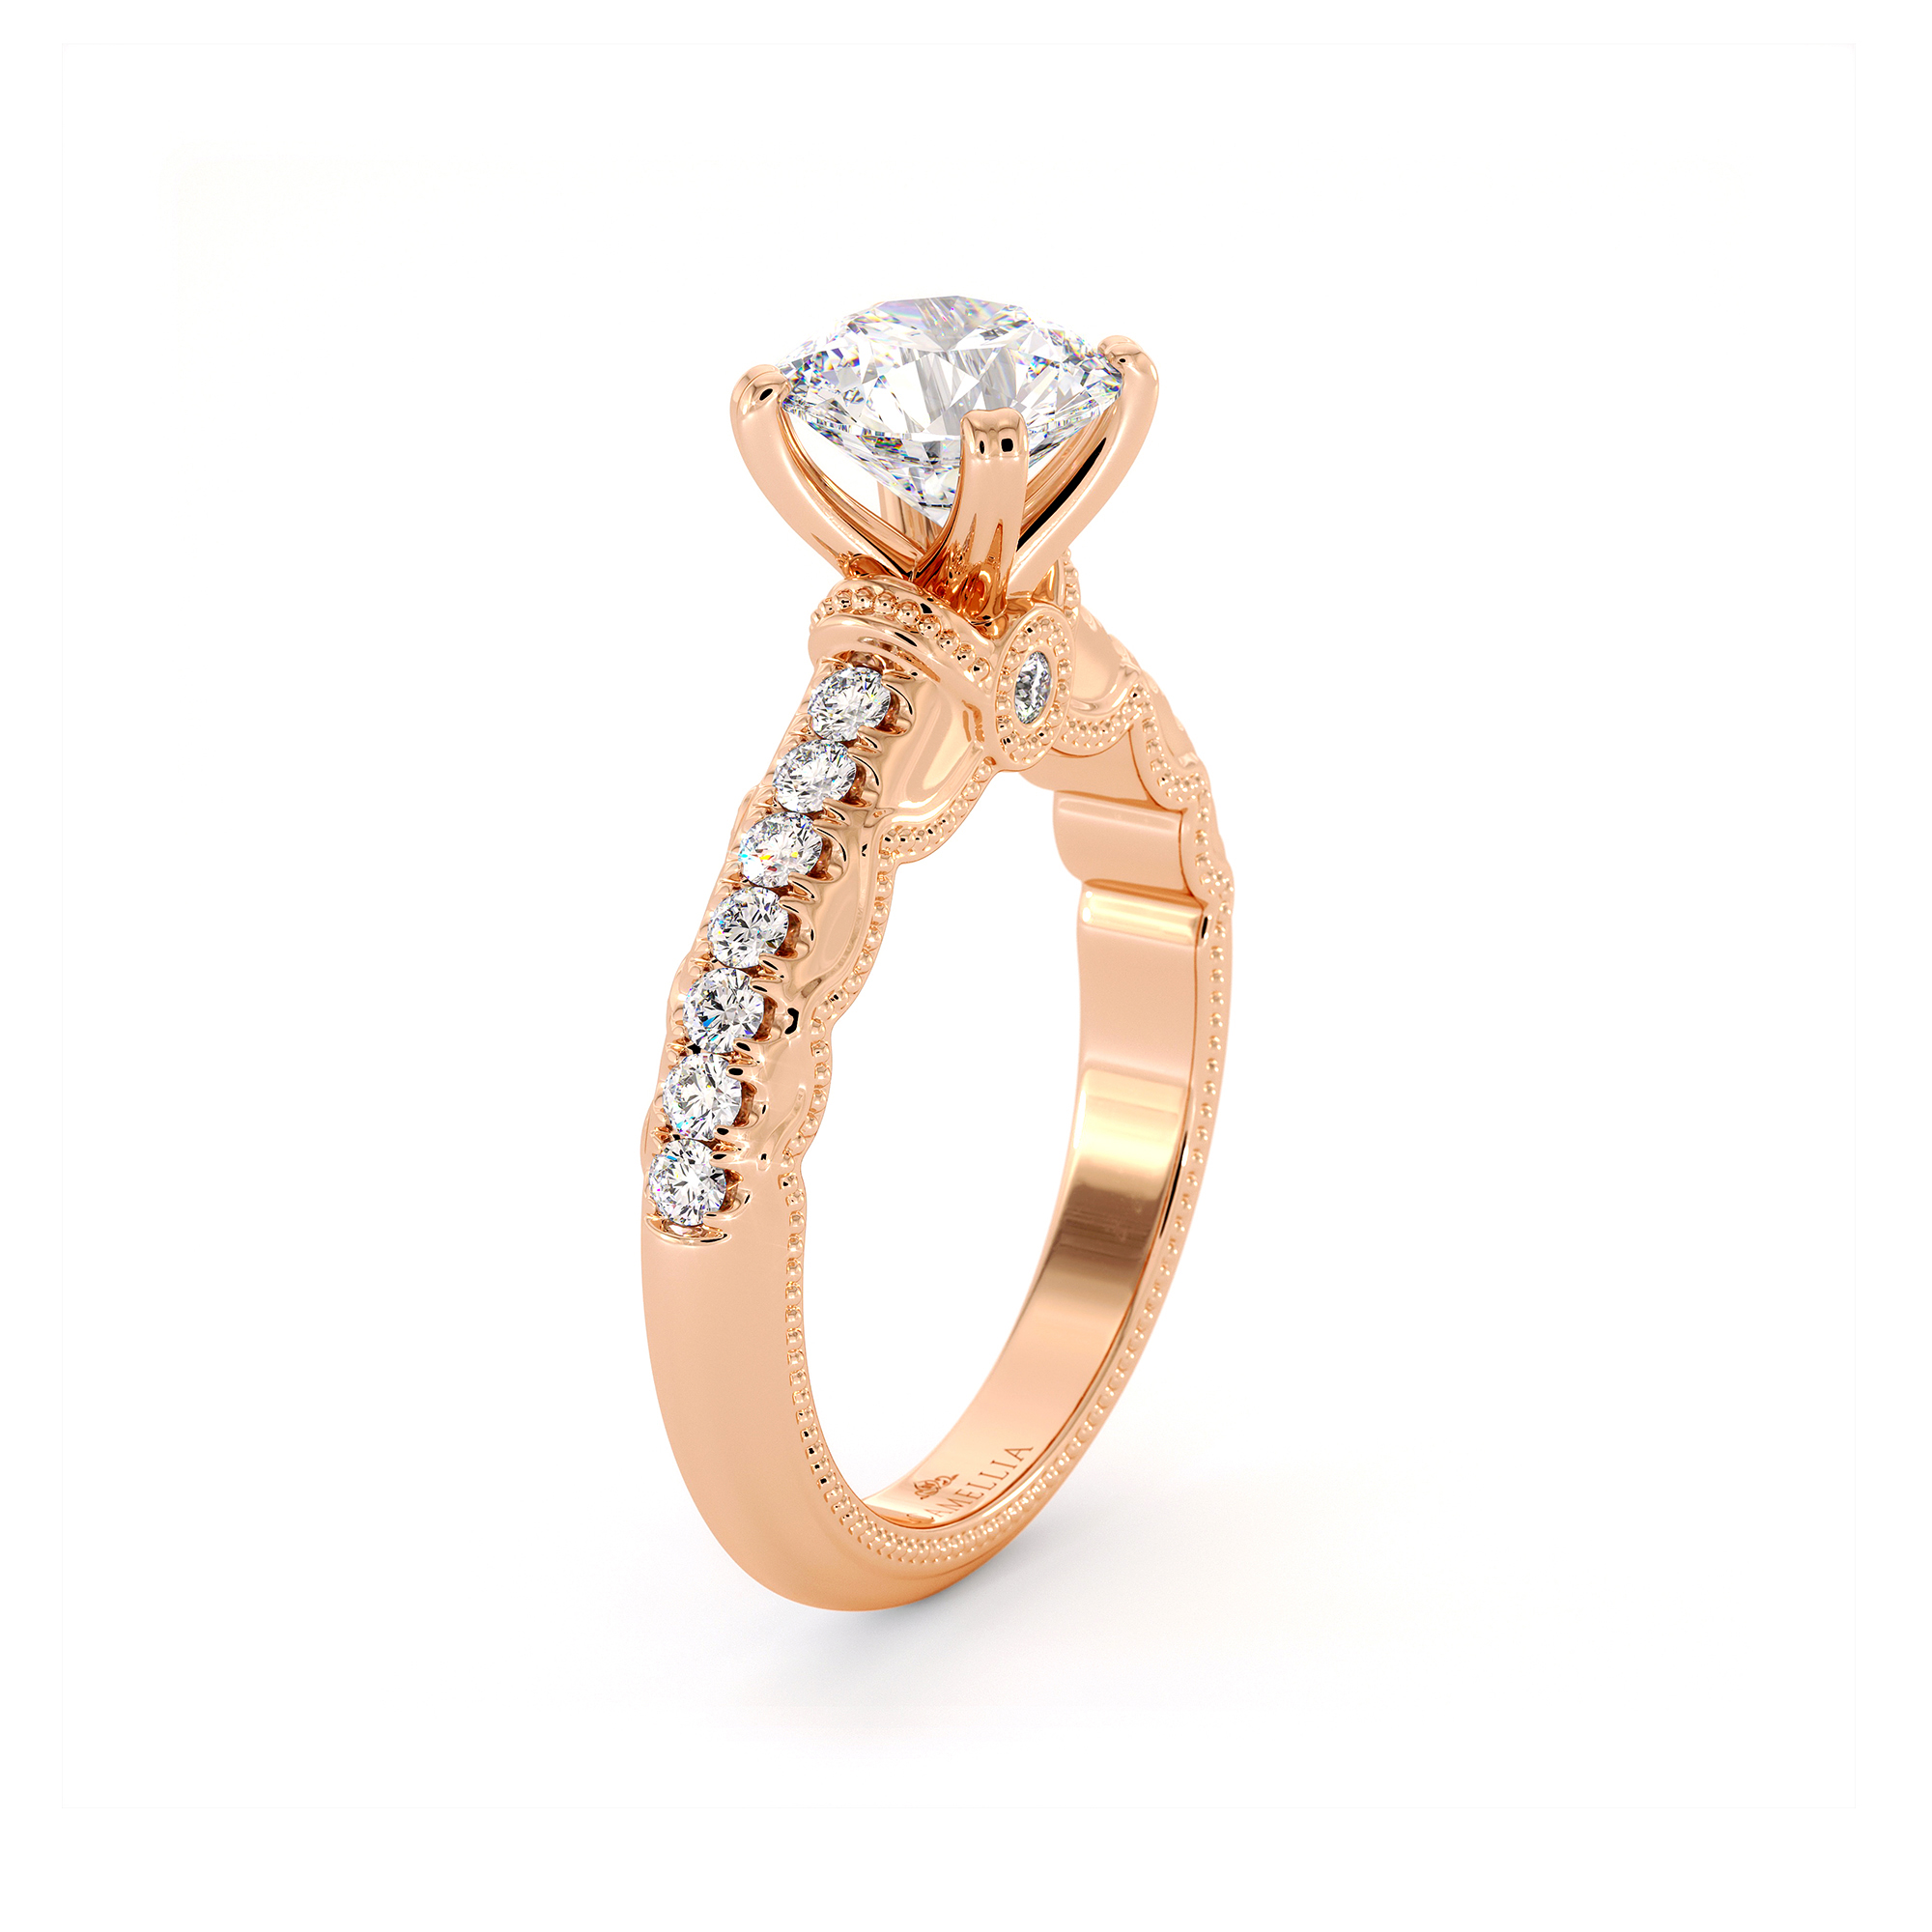 Diamond Pave Engagement Ring 14K Rose Gold Ring Victorian Bridal Ring Moissanite Engagement Ring